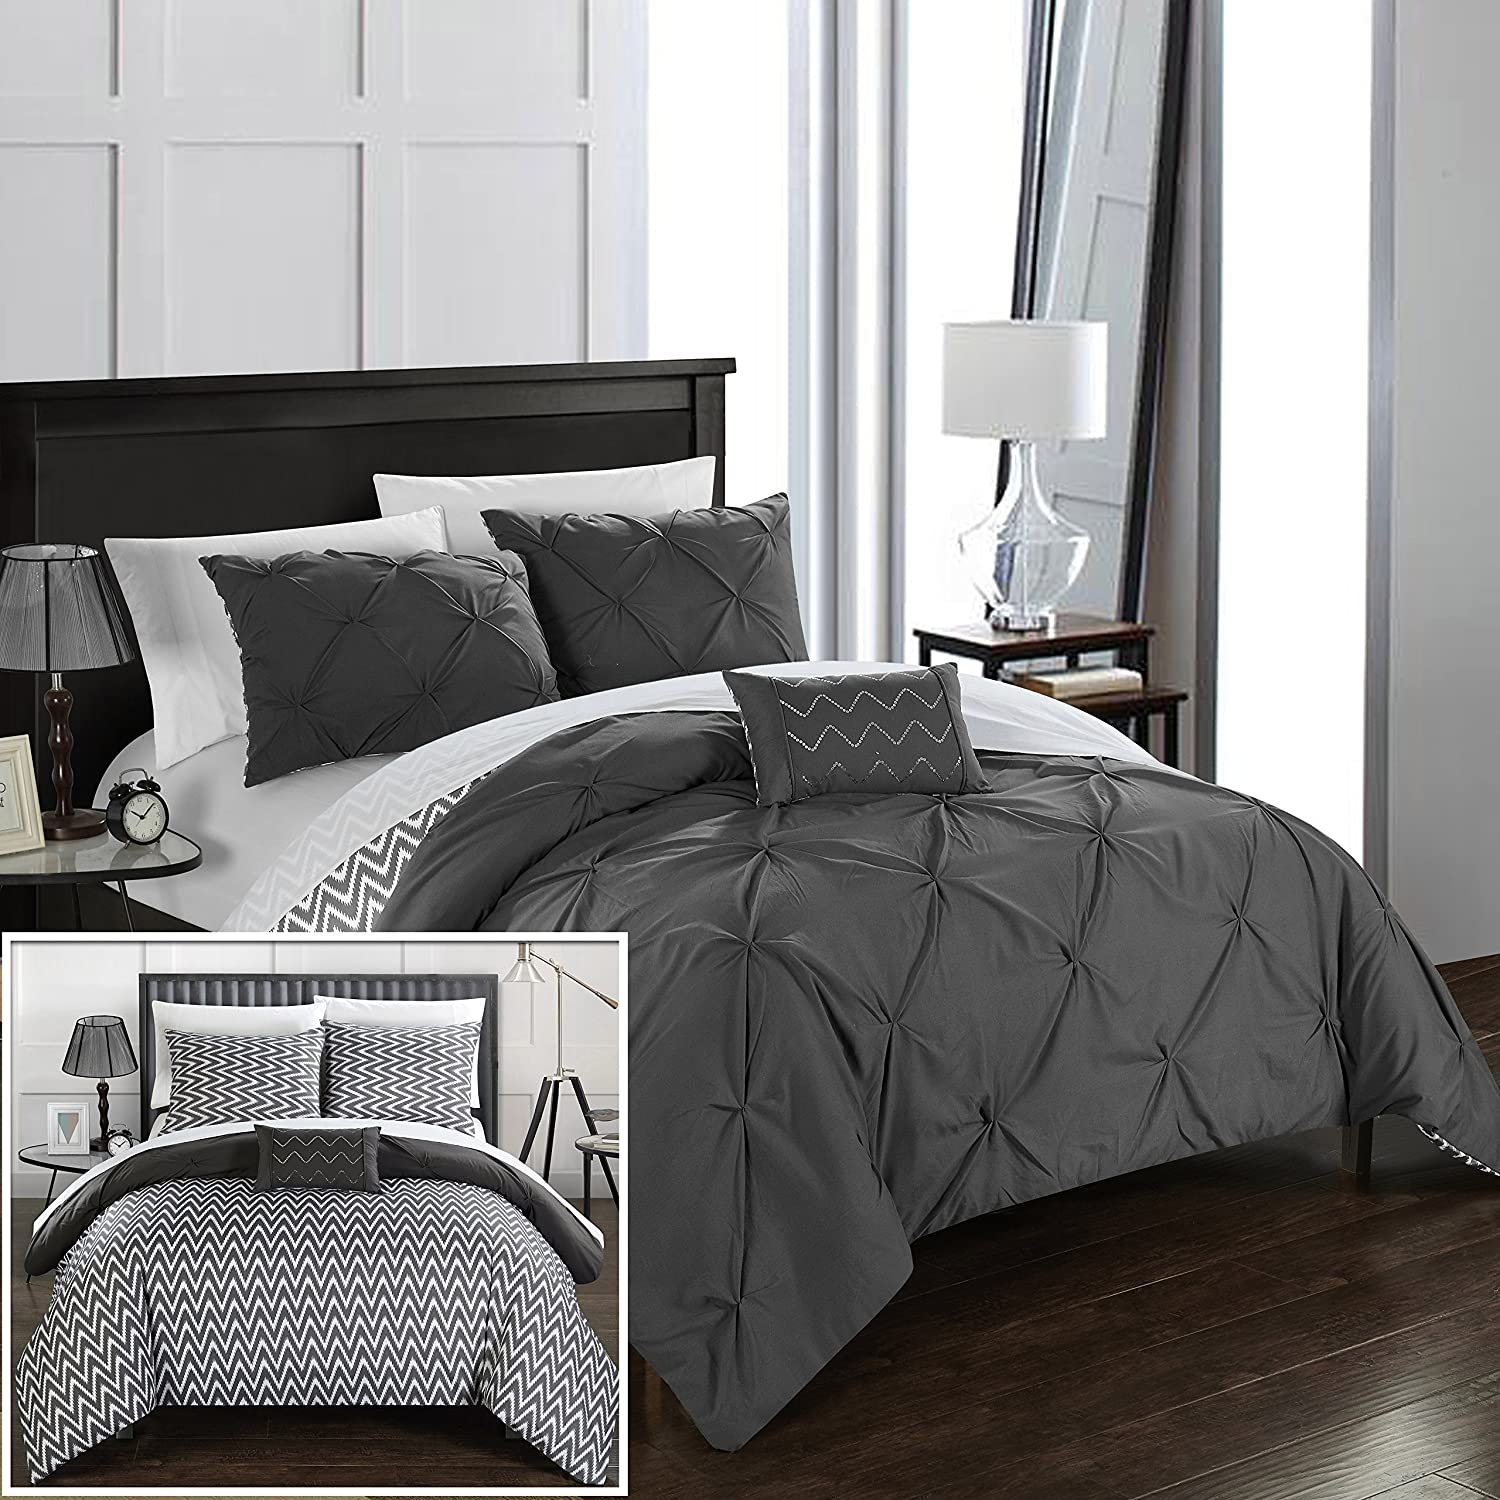 Chic Home 8 Piece Jacky Pinch Pleated Reversible Full/Queen Bed in a Bag Comforter Set Grey with Sheet Set